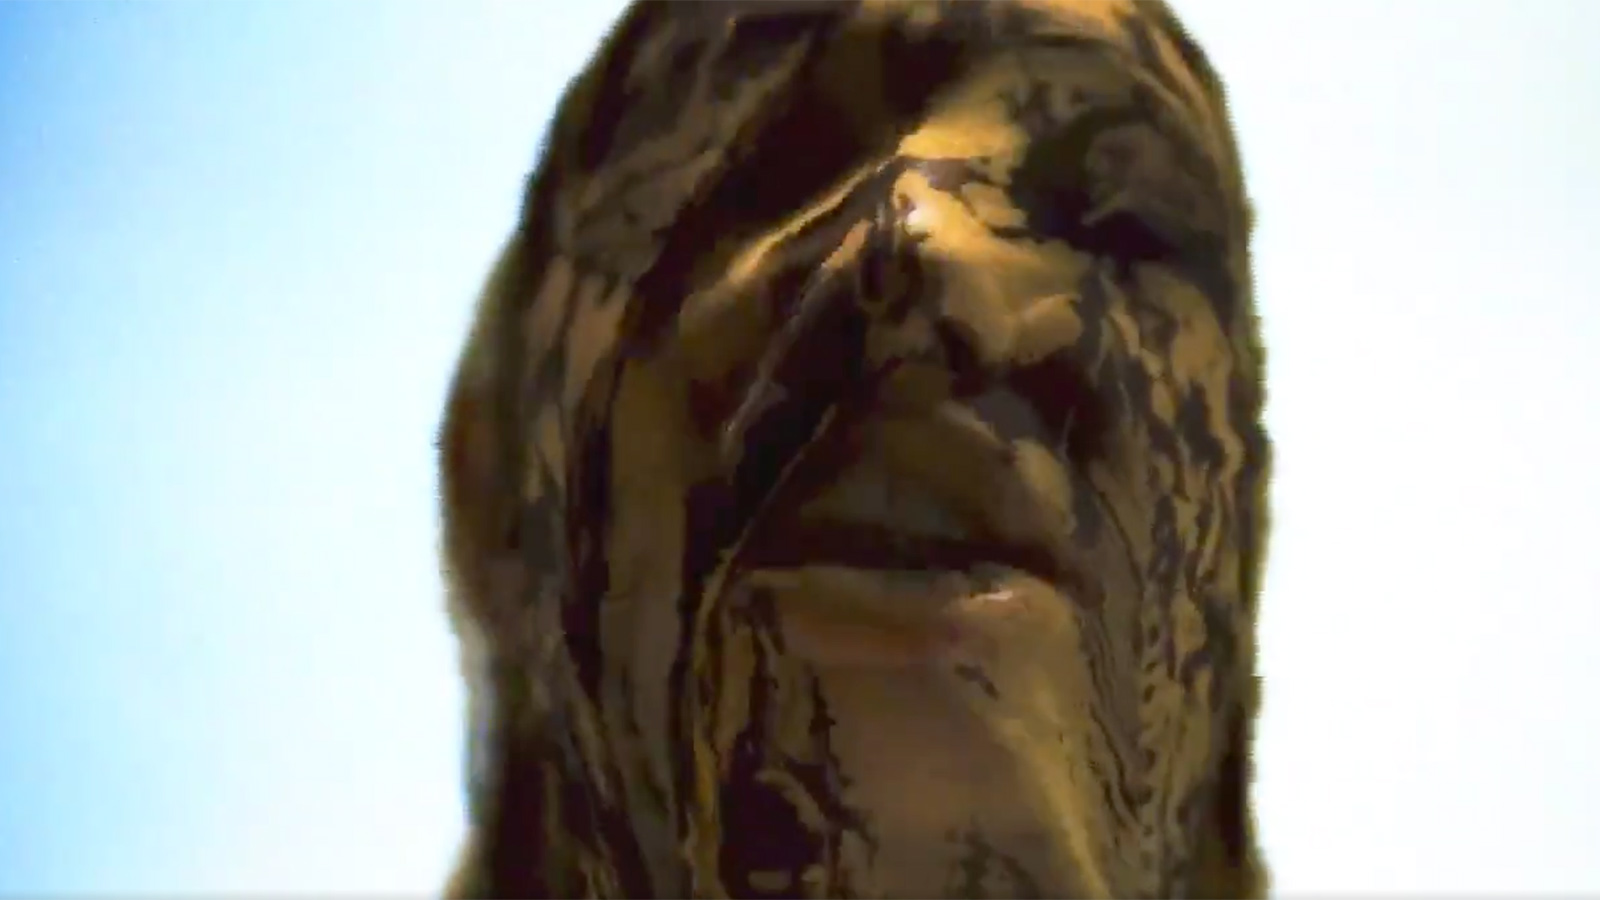 """How Dare You Martyr Me"": Slipknot Tease Mask Reveal, New Album in Latest Video"